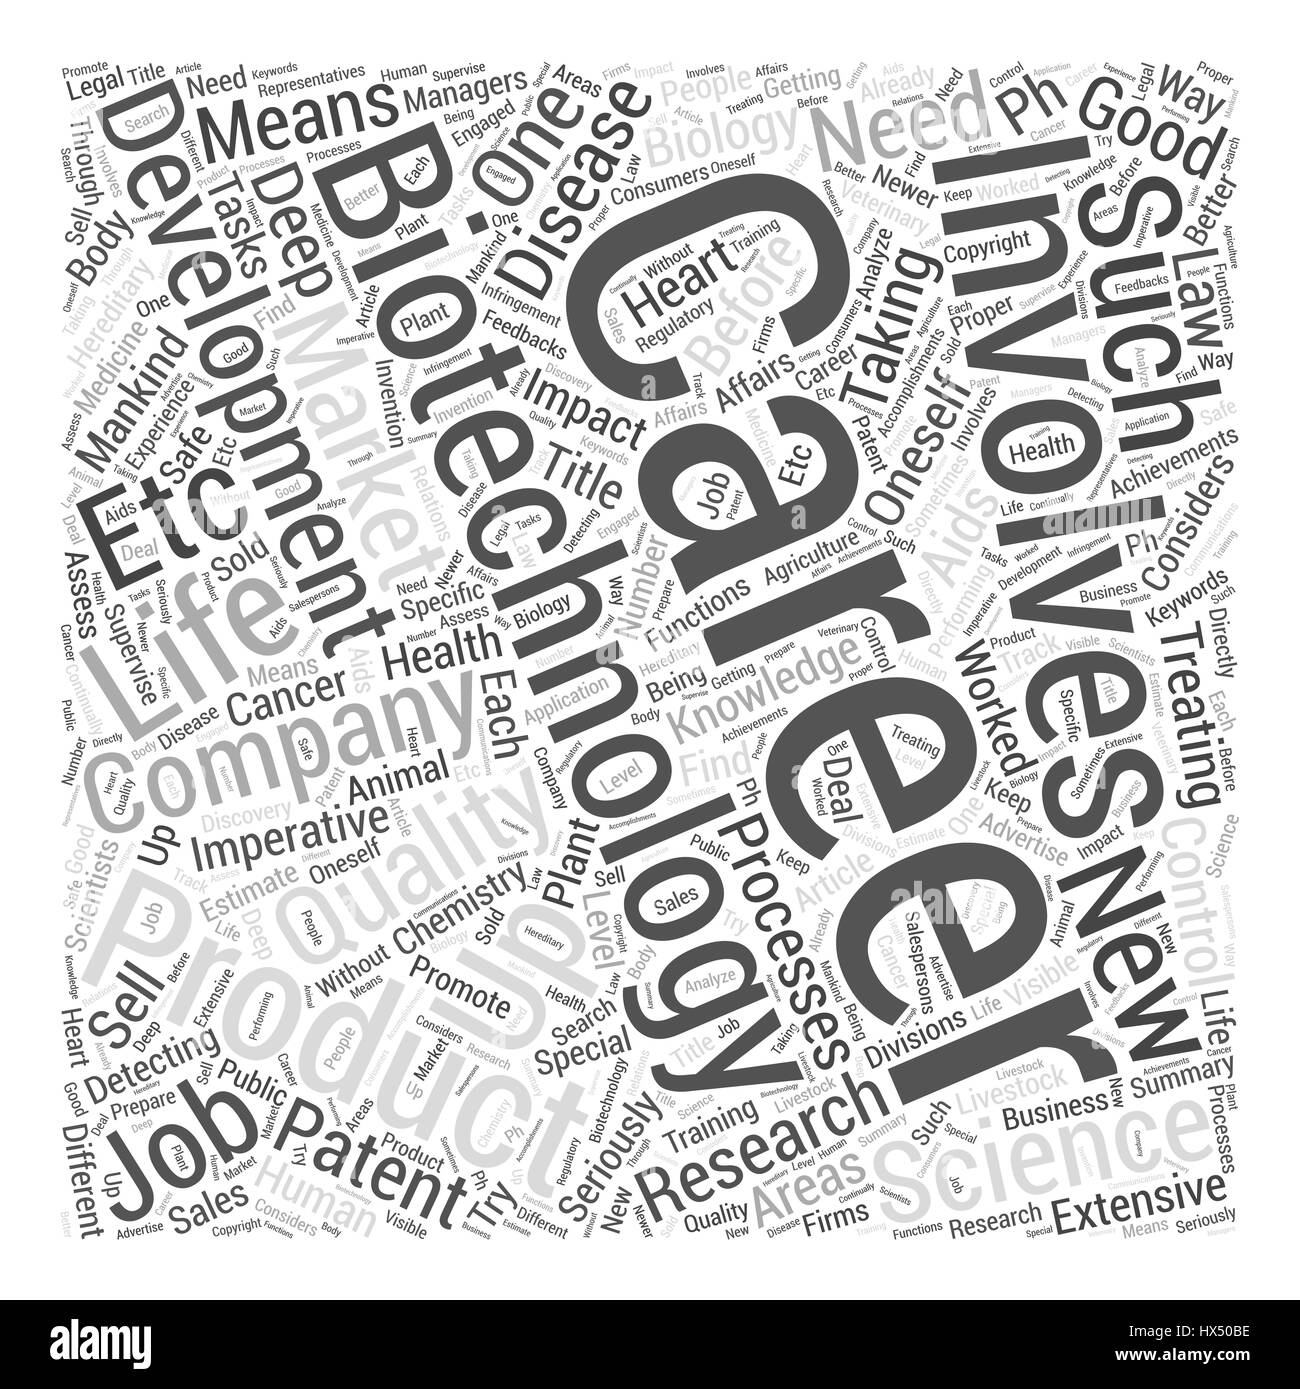 Biotechnology Careers Word Cloud Concept - Stock Image